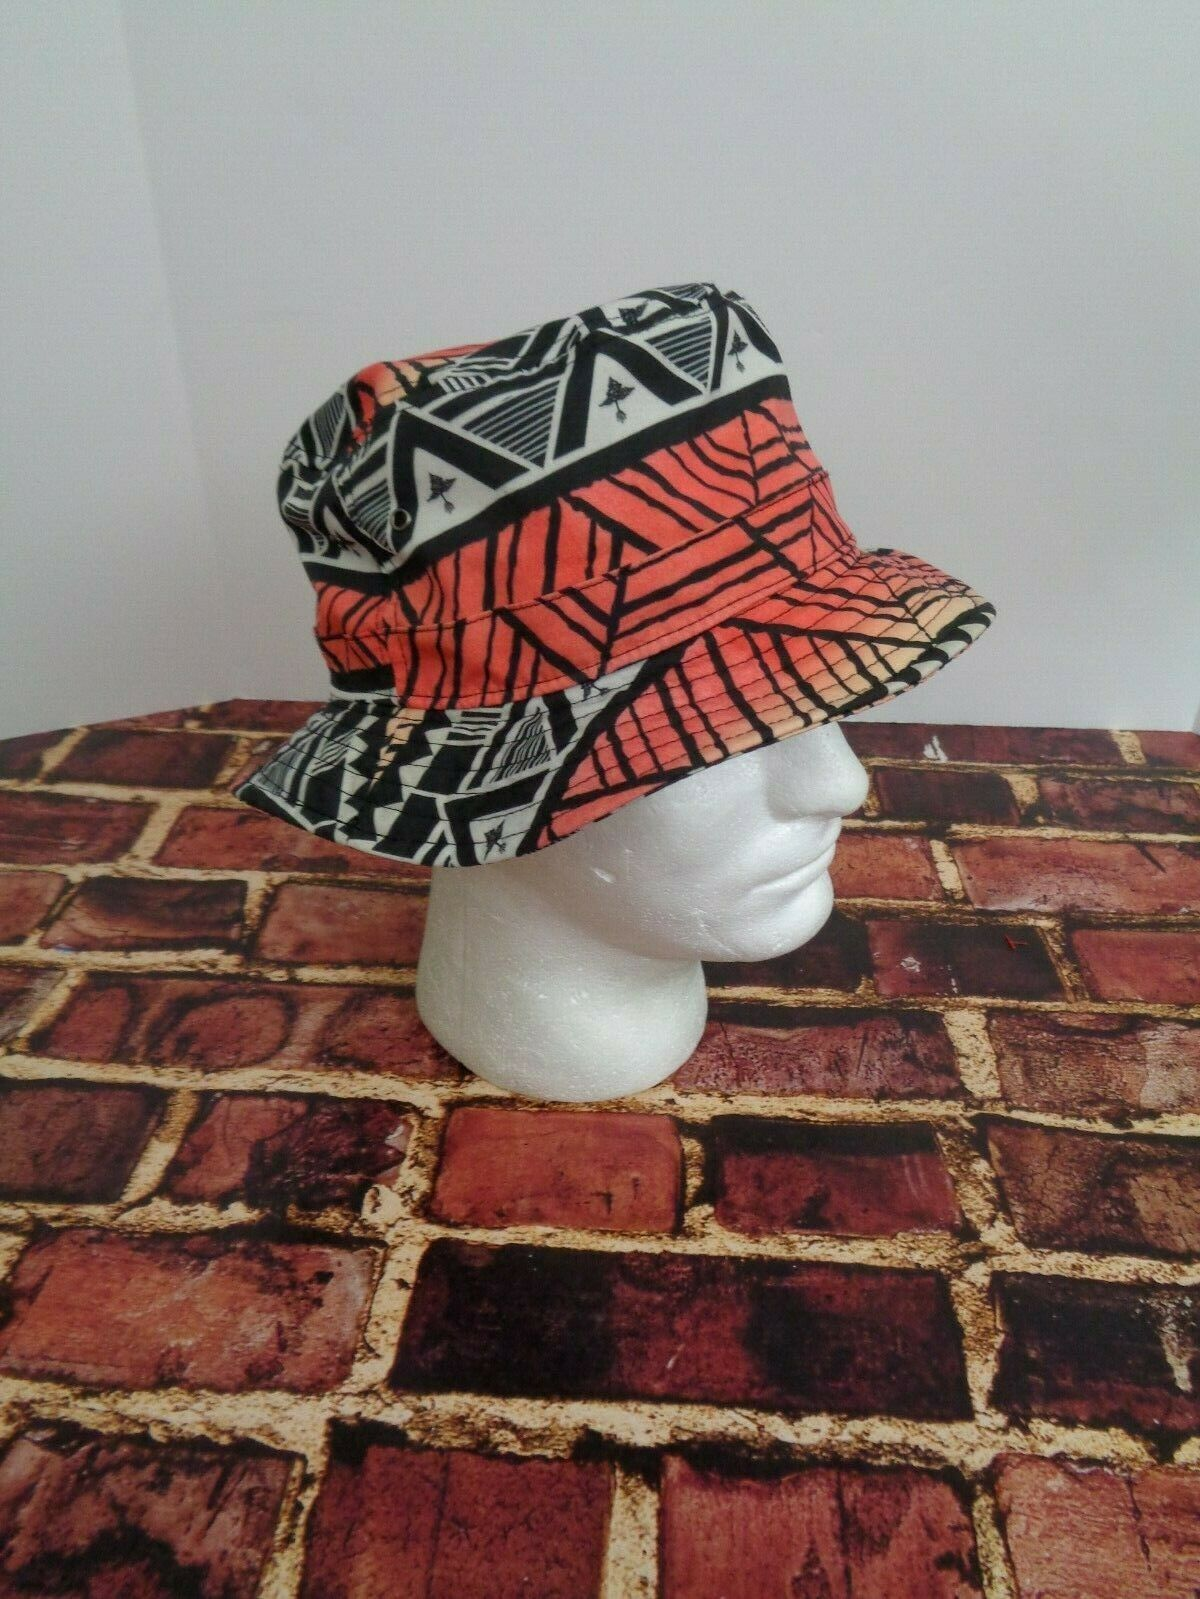 LRG Lifted Research Group FLOPPY Cap Hat Sun Fashion Black Orange Red True Heads image 3